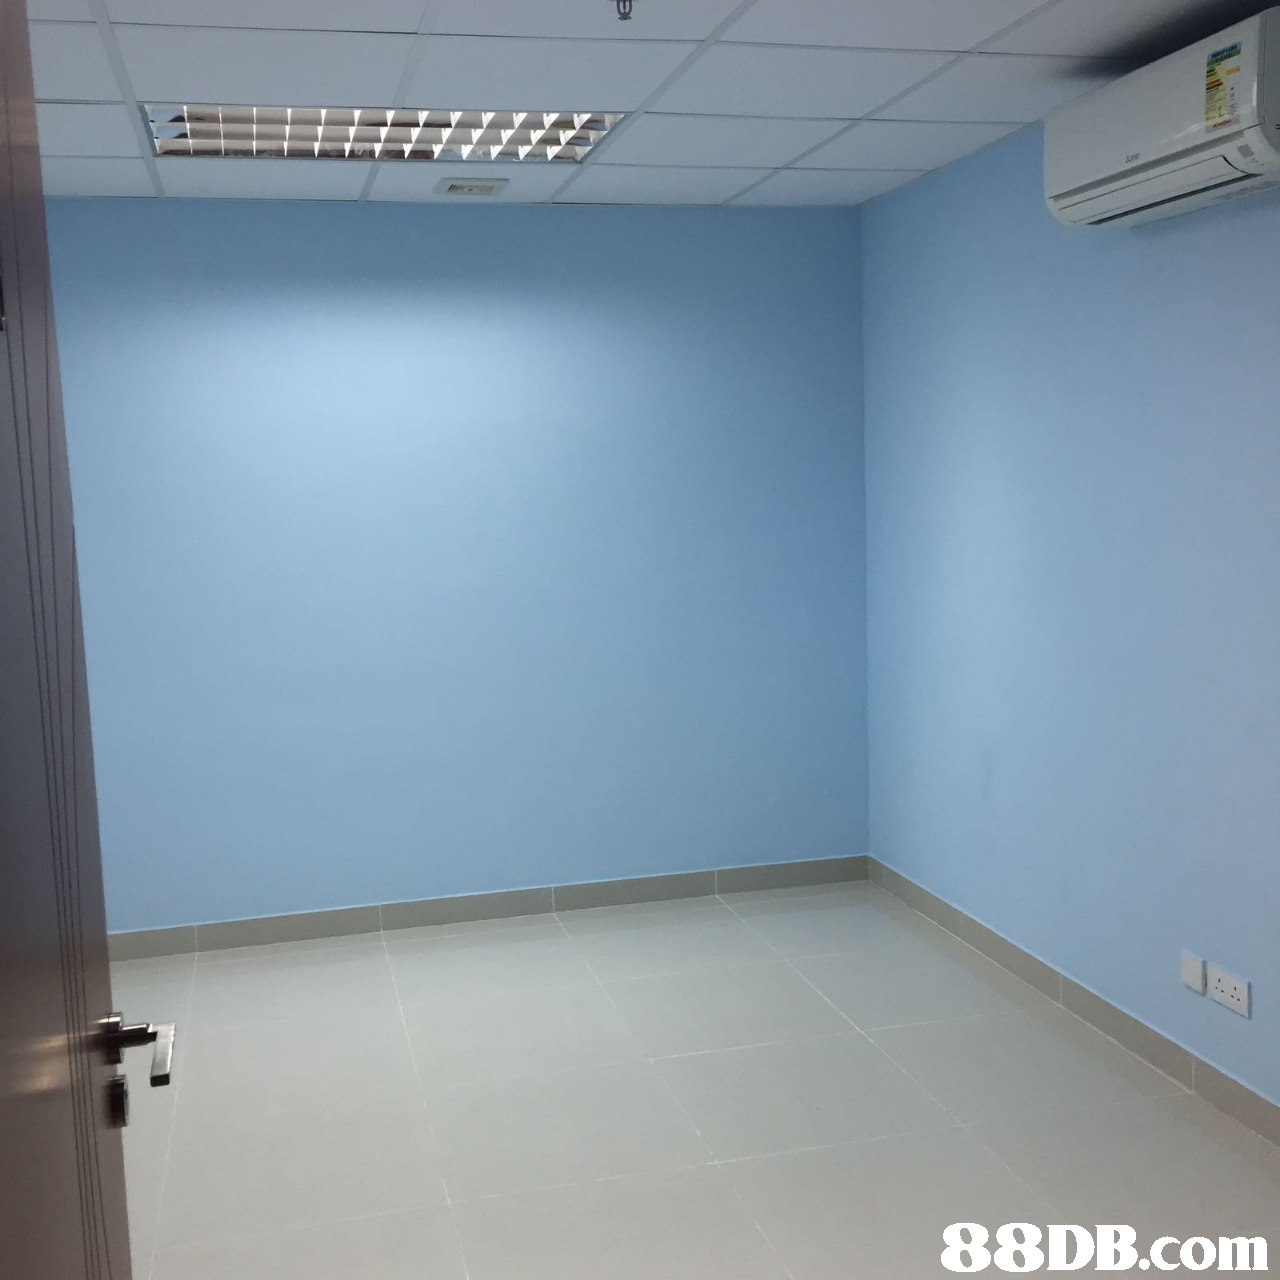 property,room,wall,floor,ceiling